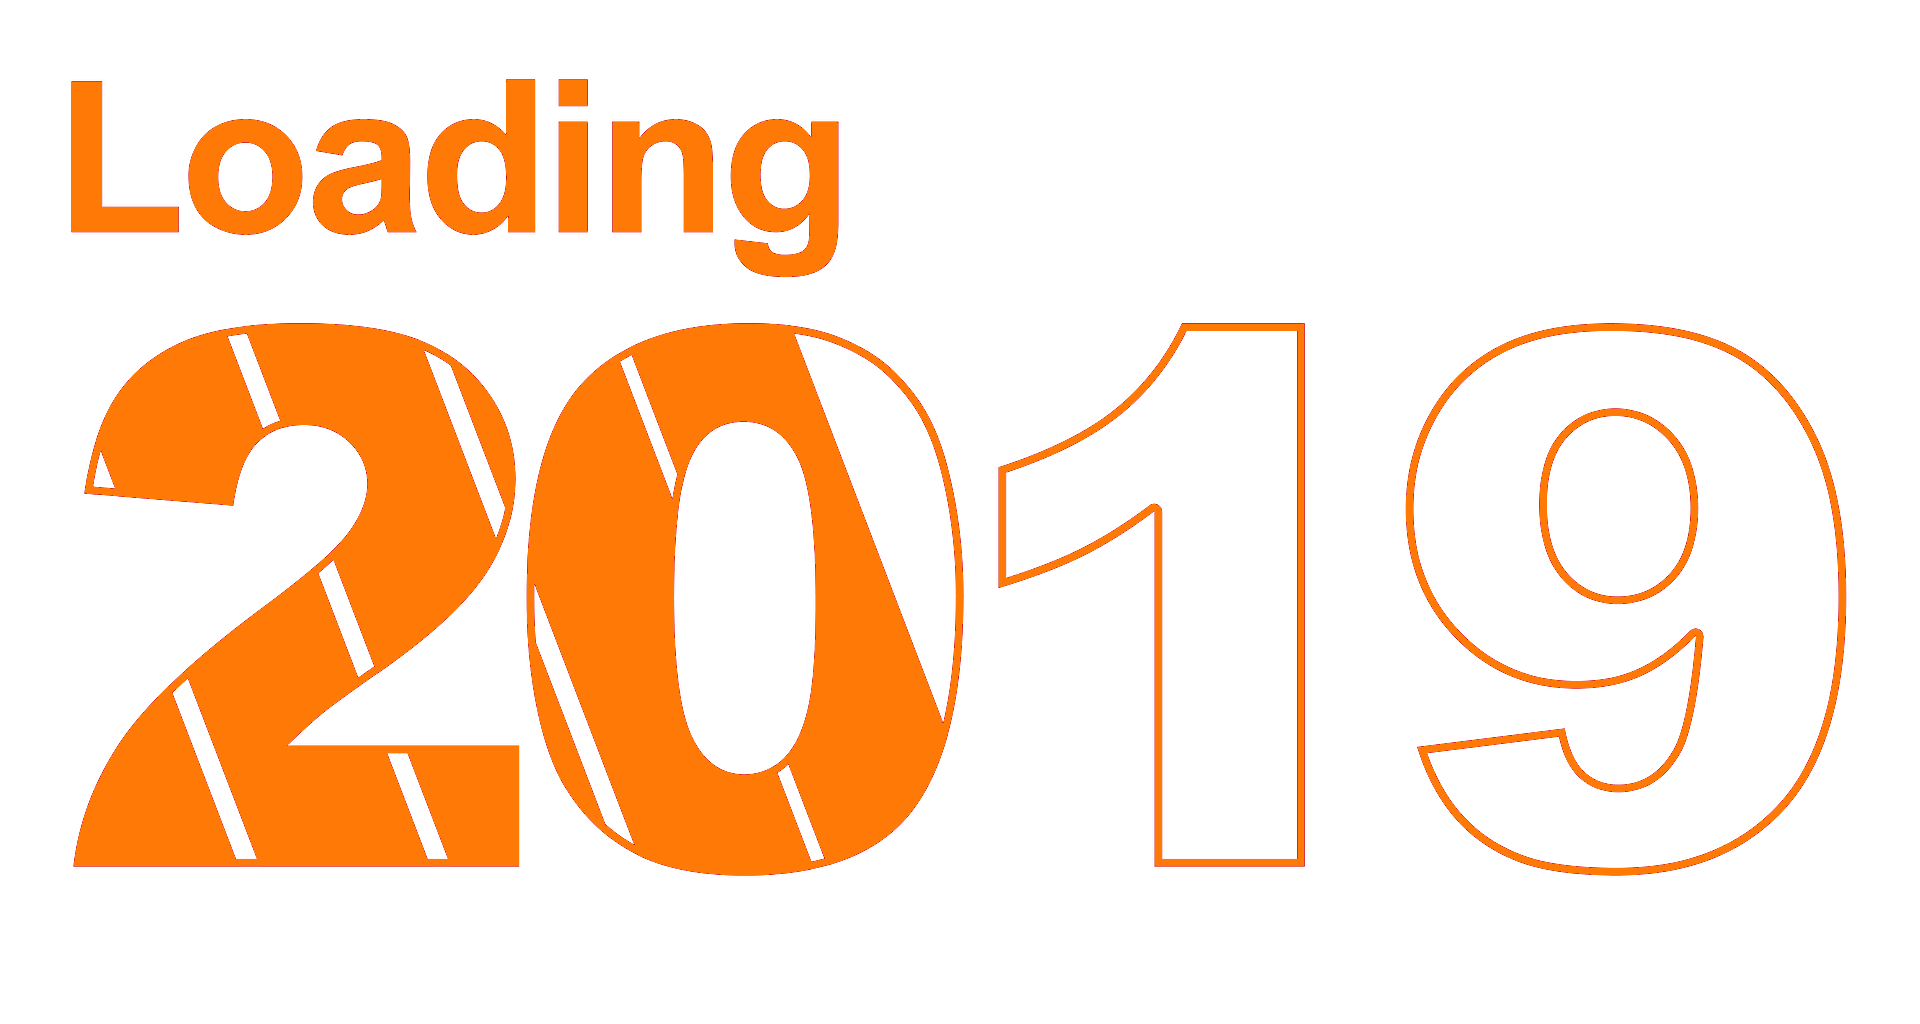 Communication on this topic: 12 Excellent Reasons to Look Forward to2019, 12-excellent-reasons-to-look-forward-to2019/